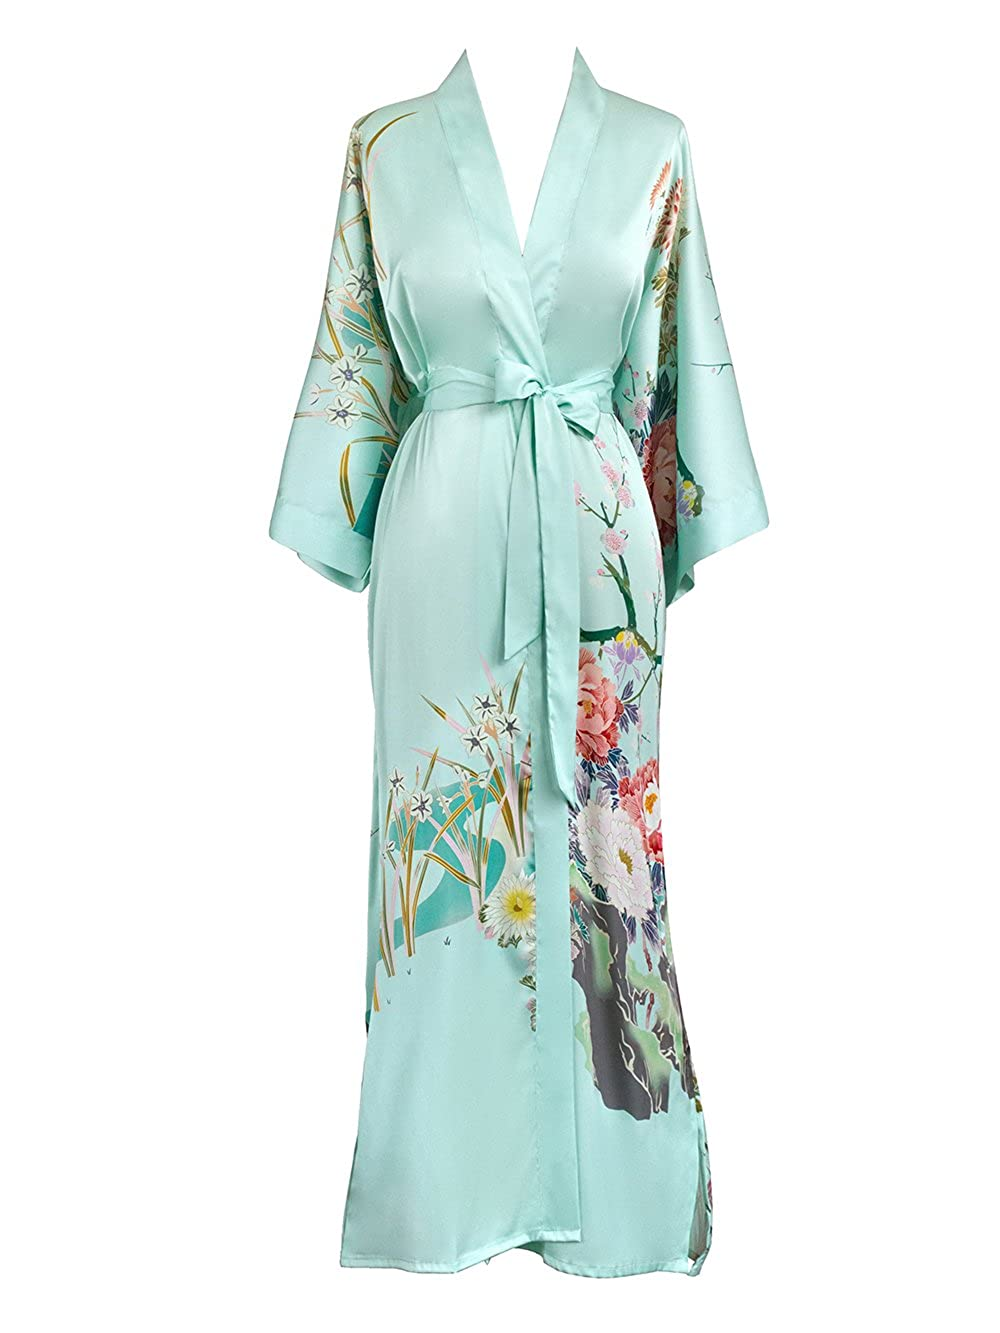 Spring Floral Mist Old Shanghai Women's Kimono Robe Long  Watercolor Floral